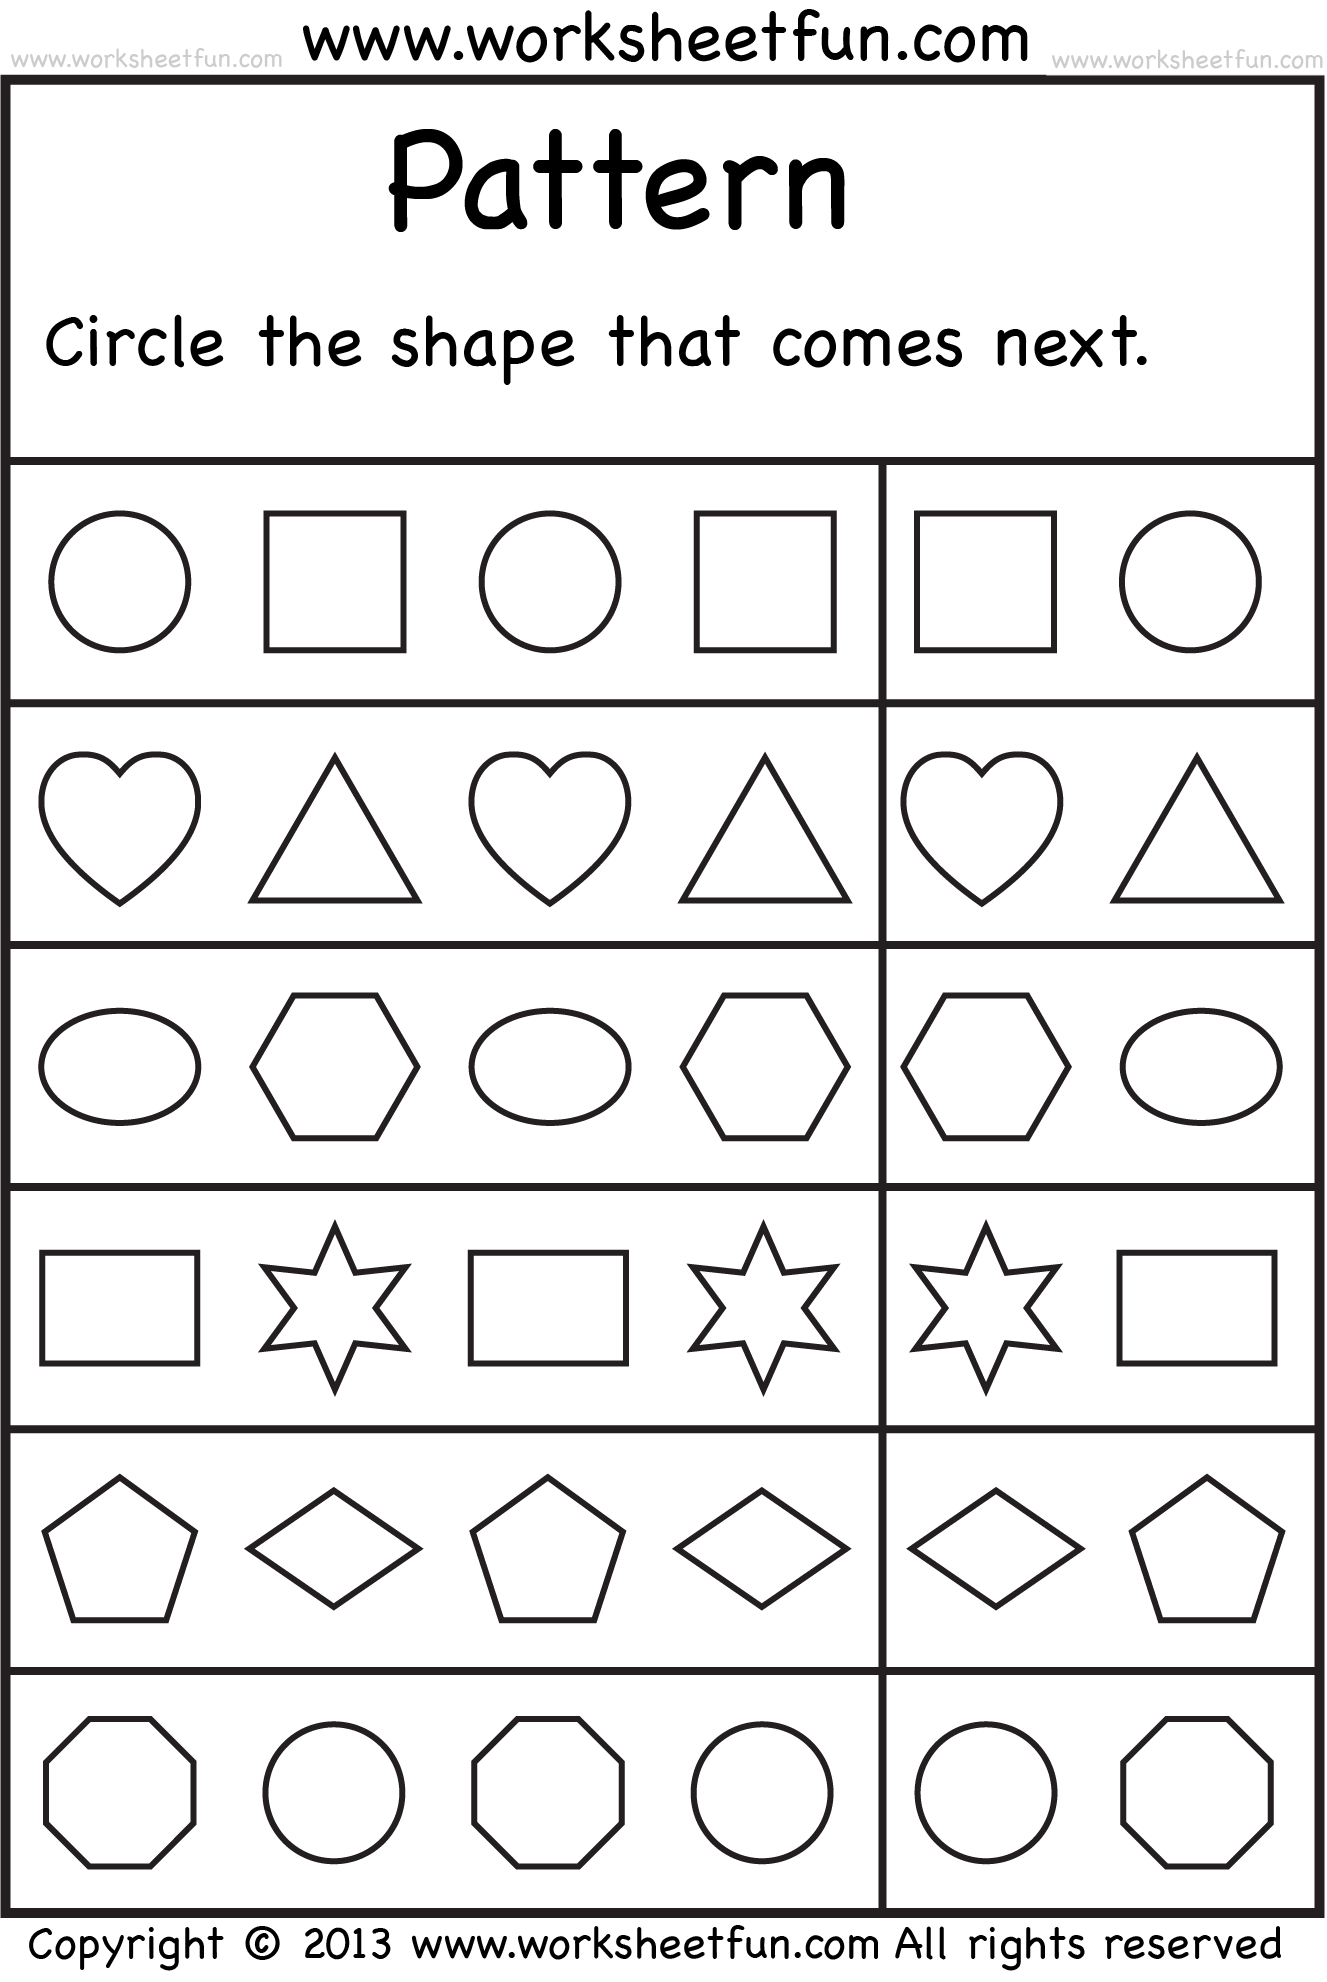 Weirdmailus  Splendid  Images About School Worksheets On Pinterest  Number Words  With Licious  Images About School Worksheets On Pinterest  Number Words Alphabet Worksheets And Free Printable Kindergarten Worksheets With Astounding Free Missing Number Worksheets Also Italian Worksheet In Addition Reading Comprehension Worksheets Th Grade Free And Planes Of Symmetry Worksheet As Well As Maths Ks Worksheets Additionally Metric System Worksheets Th Grade From Pinterestcom With Weirdmailus  Licious  Images About School Worksheets On Pinterest  Number Words  With Astounding  Images About School Worksheets On Pinterest  Number Words Alphabet Worksheets And Free Printable Kindergarten Worksheets And Splendid Free Missing Number Worksheets Also Italian Worksheet In Addition Reading Comprehension Worksheets Th Grade Free From Pinterestcom